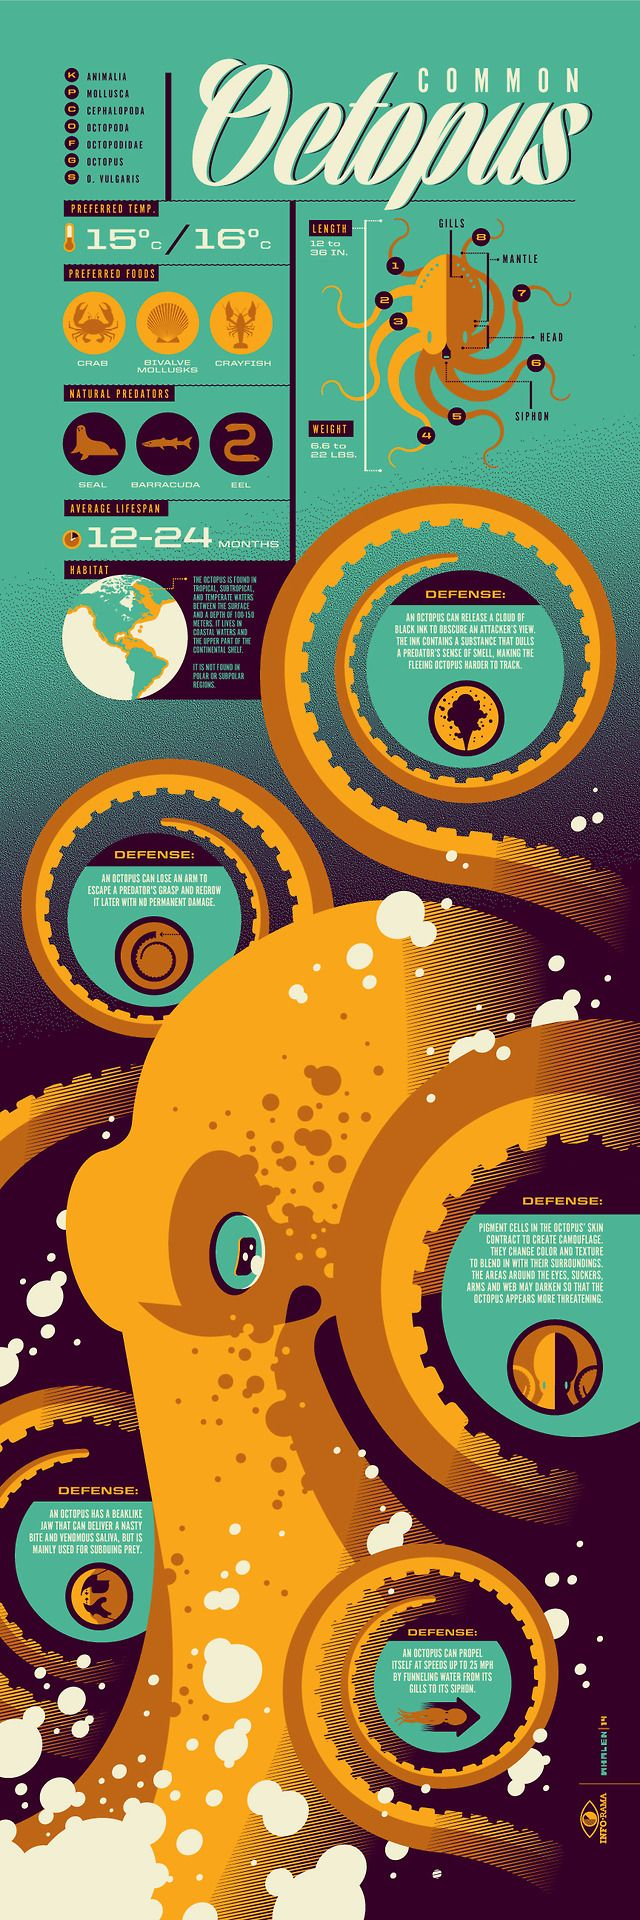 Stunning Infographic Art Series - Design - ShortList Magazine | Nothing common about the octopus